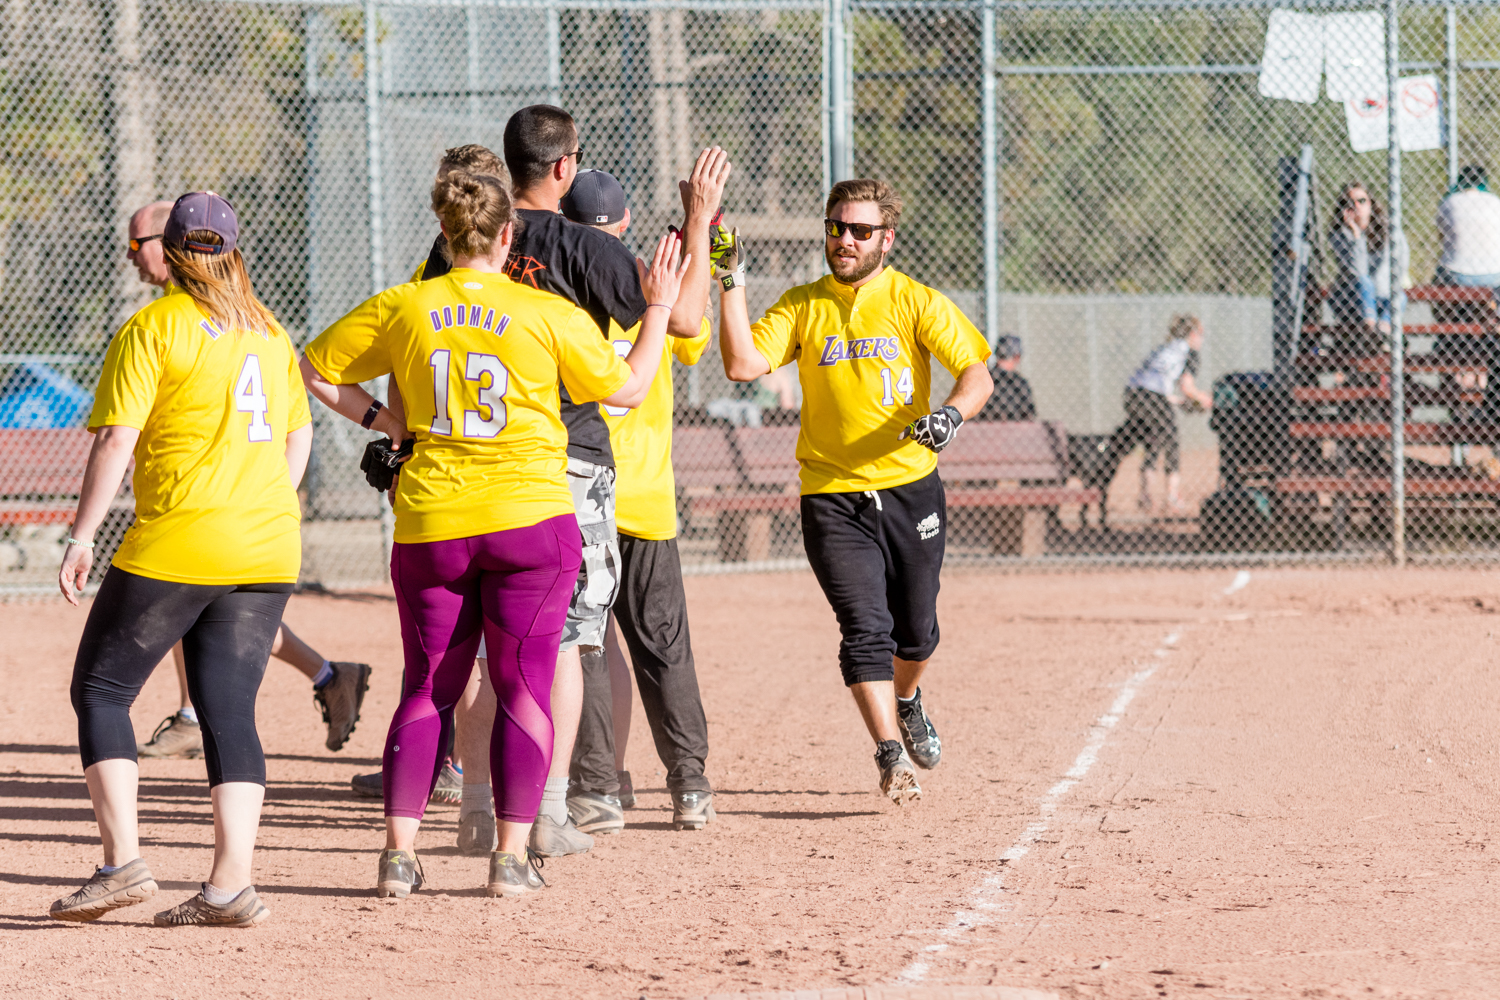 2017 08 22 Softball Playoffs 1-106.jpg